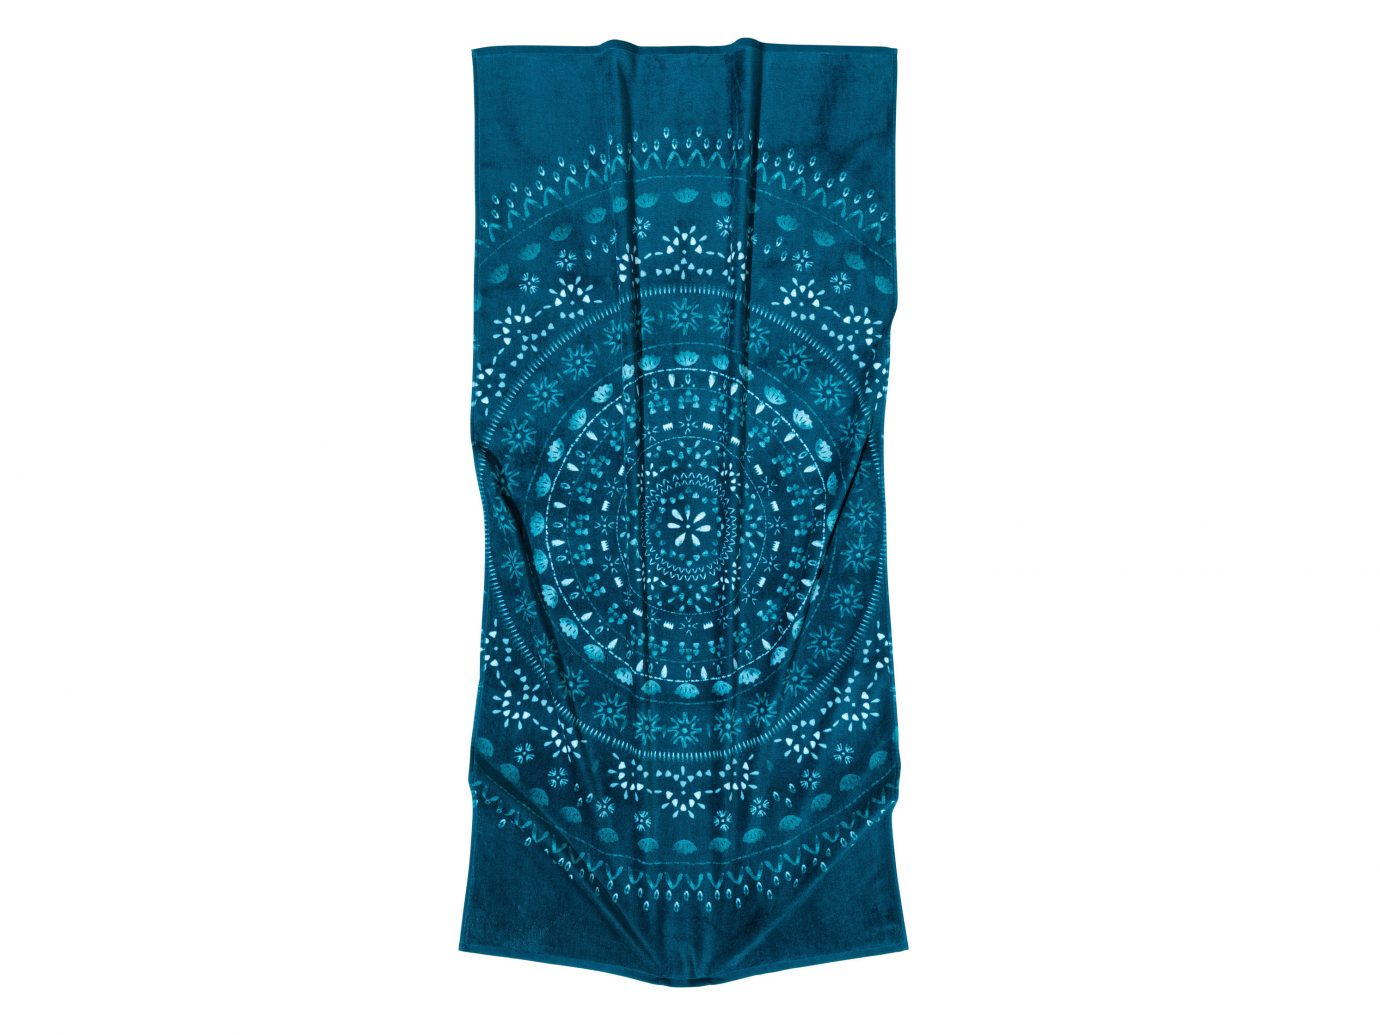 Style + Design aqua teal turquoise electric blue silk